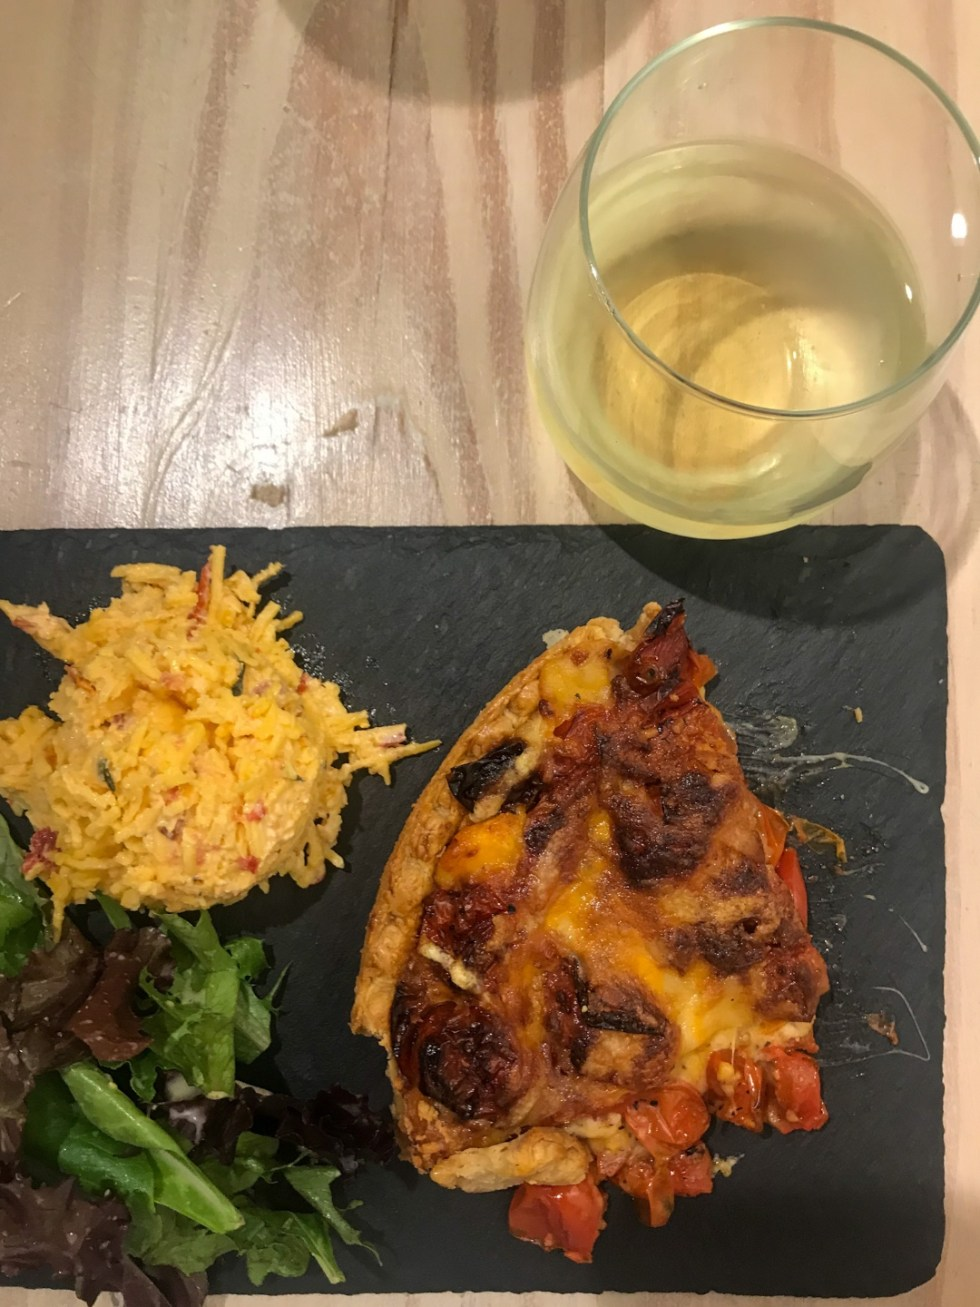 Things to do in Greenville NC by popular NC blog, I'm Fixin' To: image of pizza, salad, and a glass of white wine.